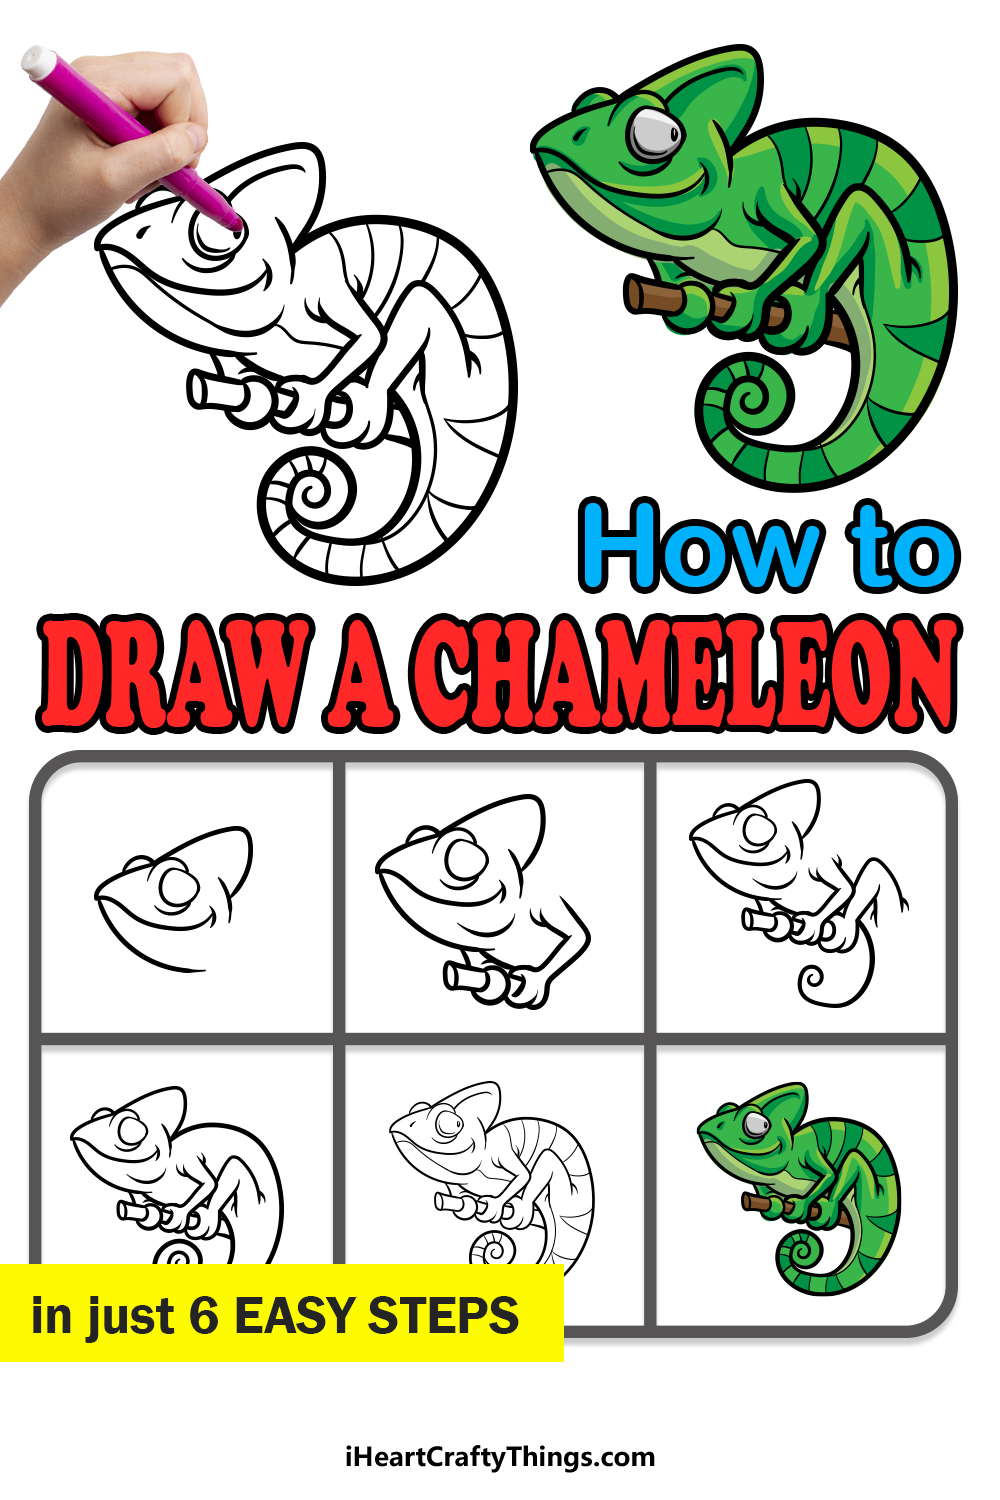 How to draw a chameleon in 6 easy steps